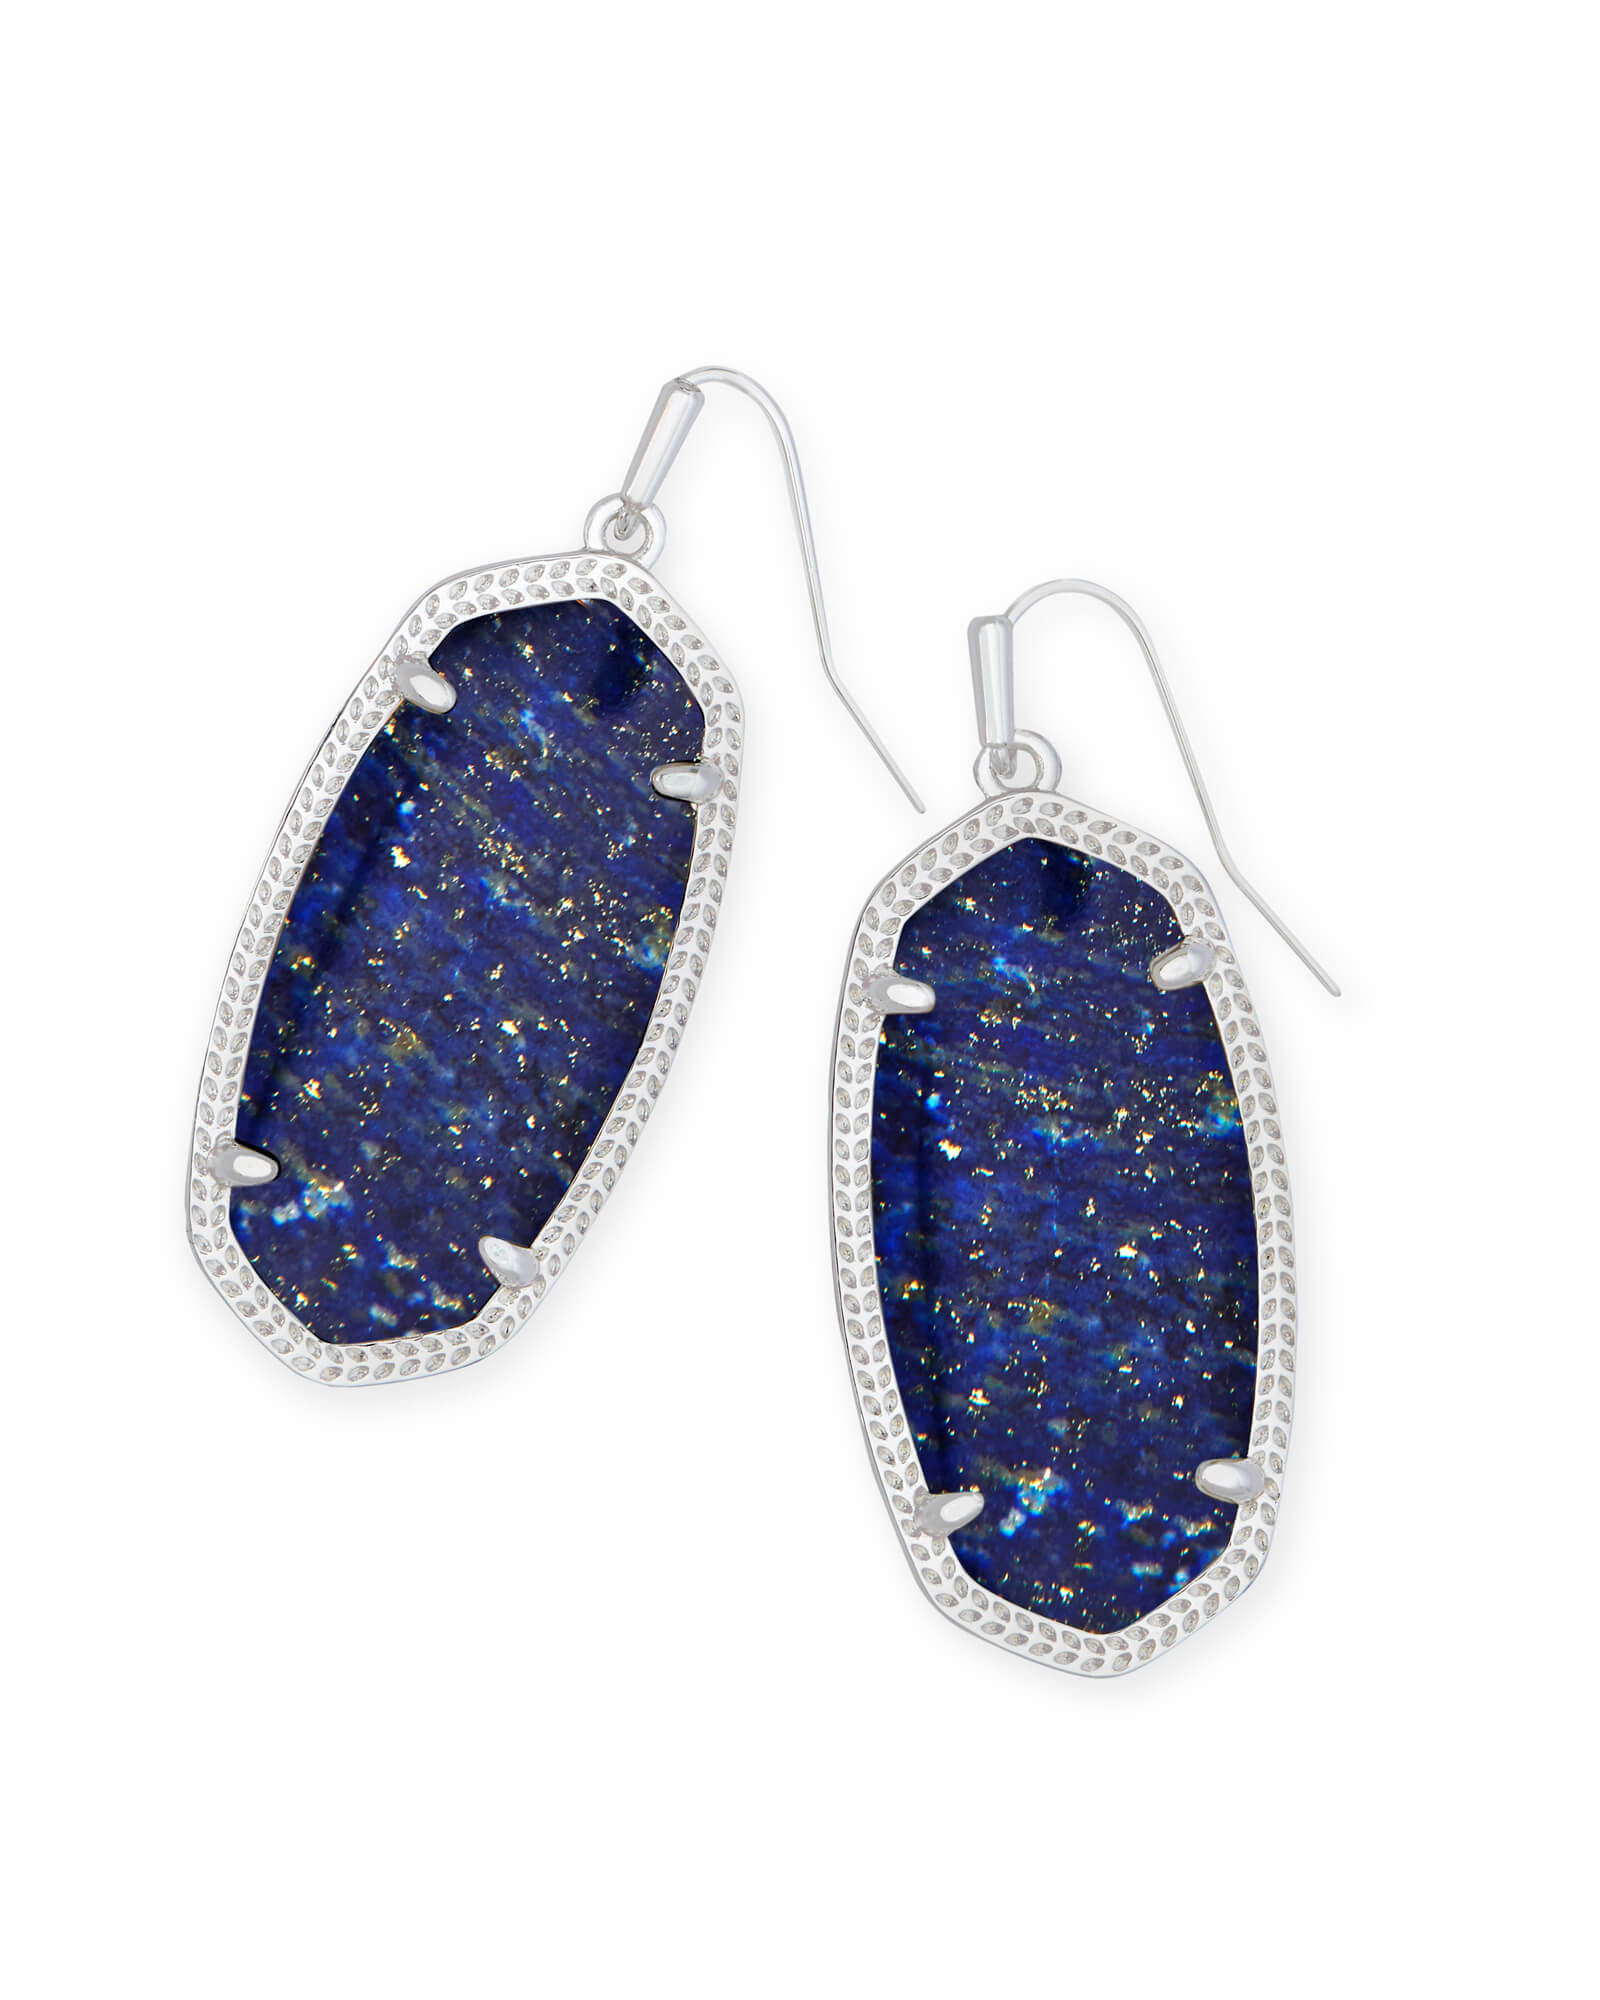 Elle Bright Silver Drop Earrings in Blue Lapis